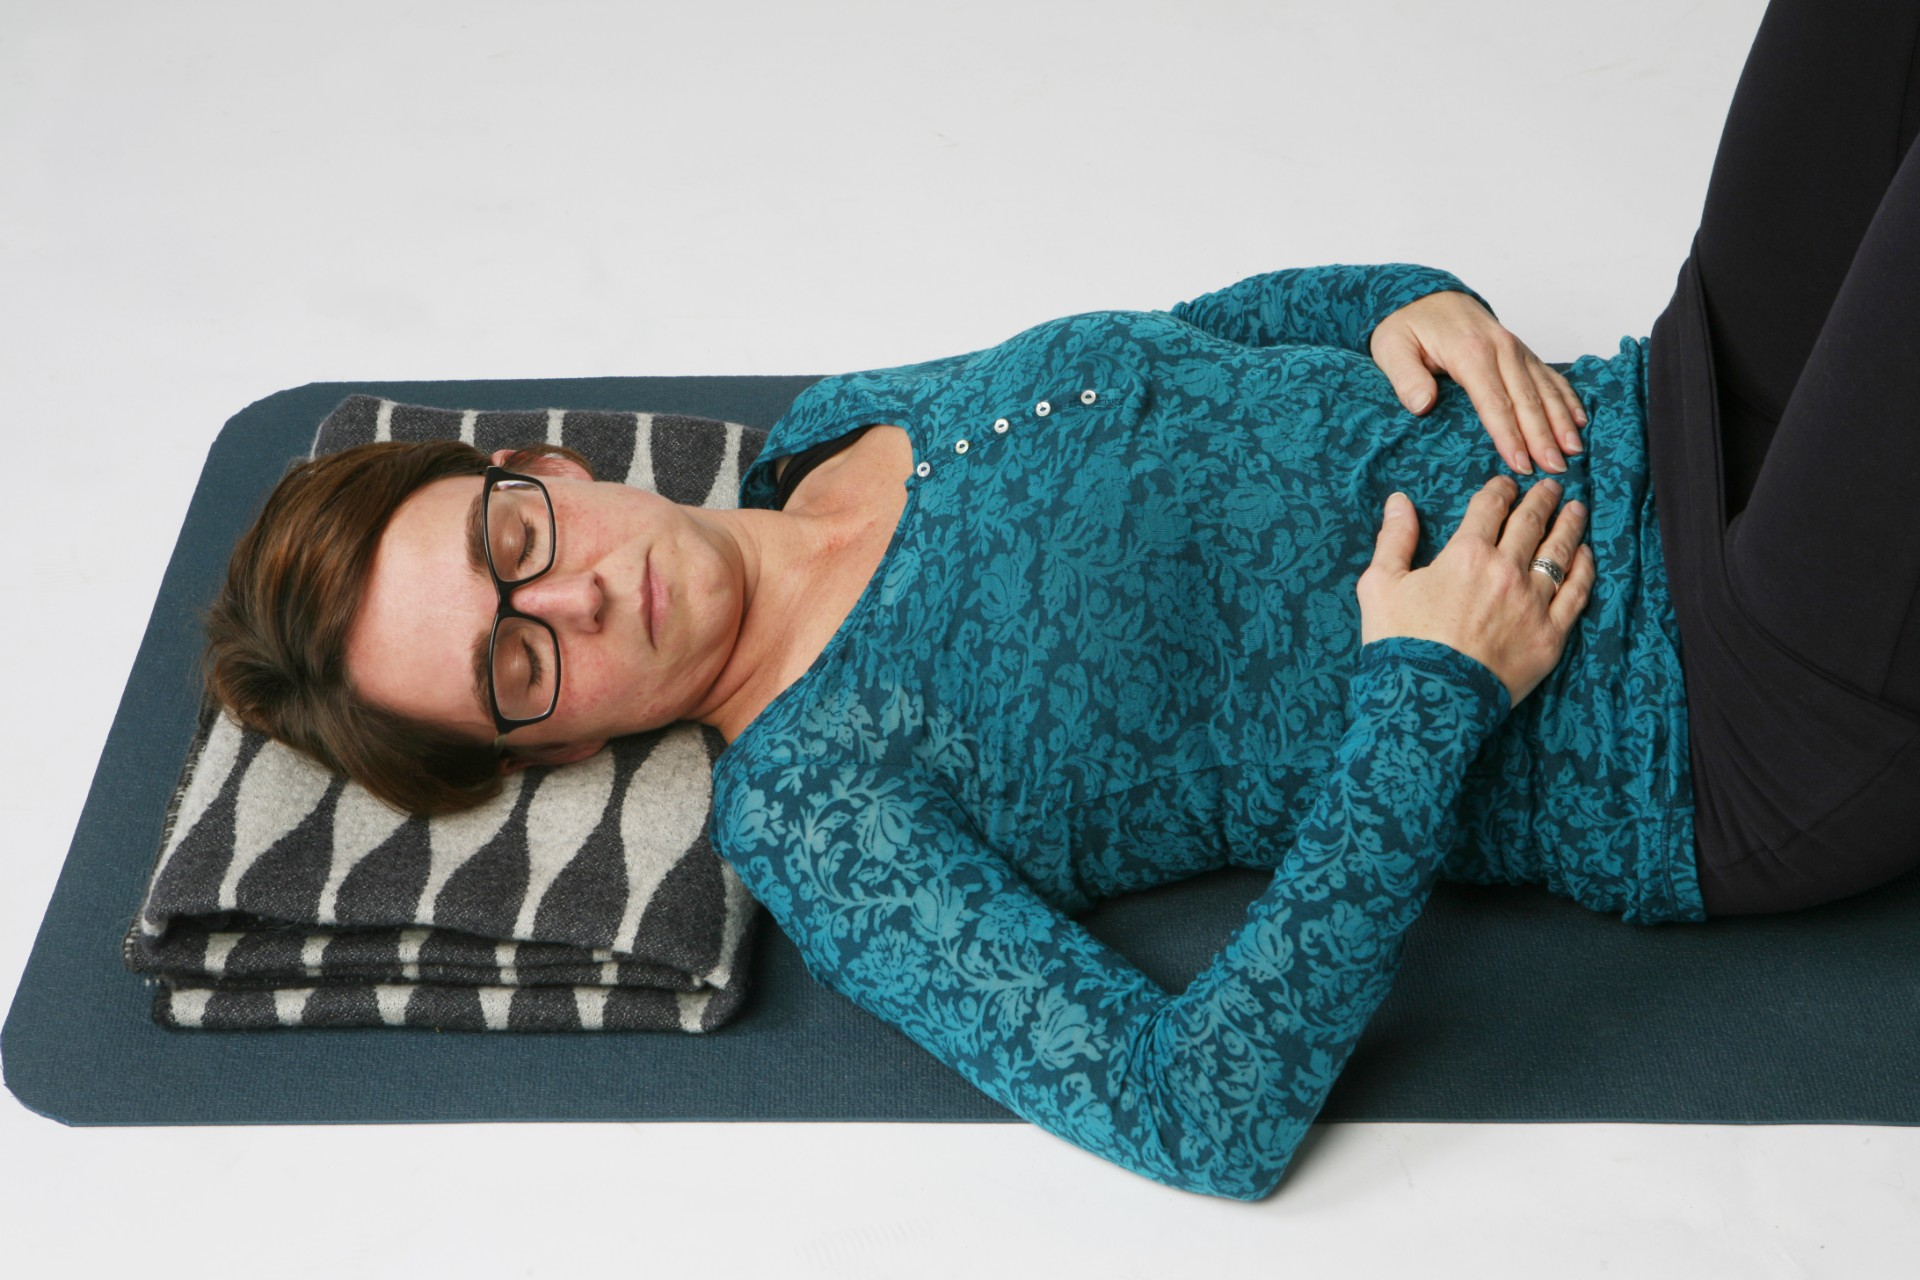 Restorative Yoga: Wellness